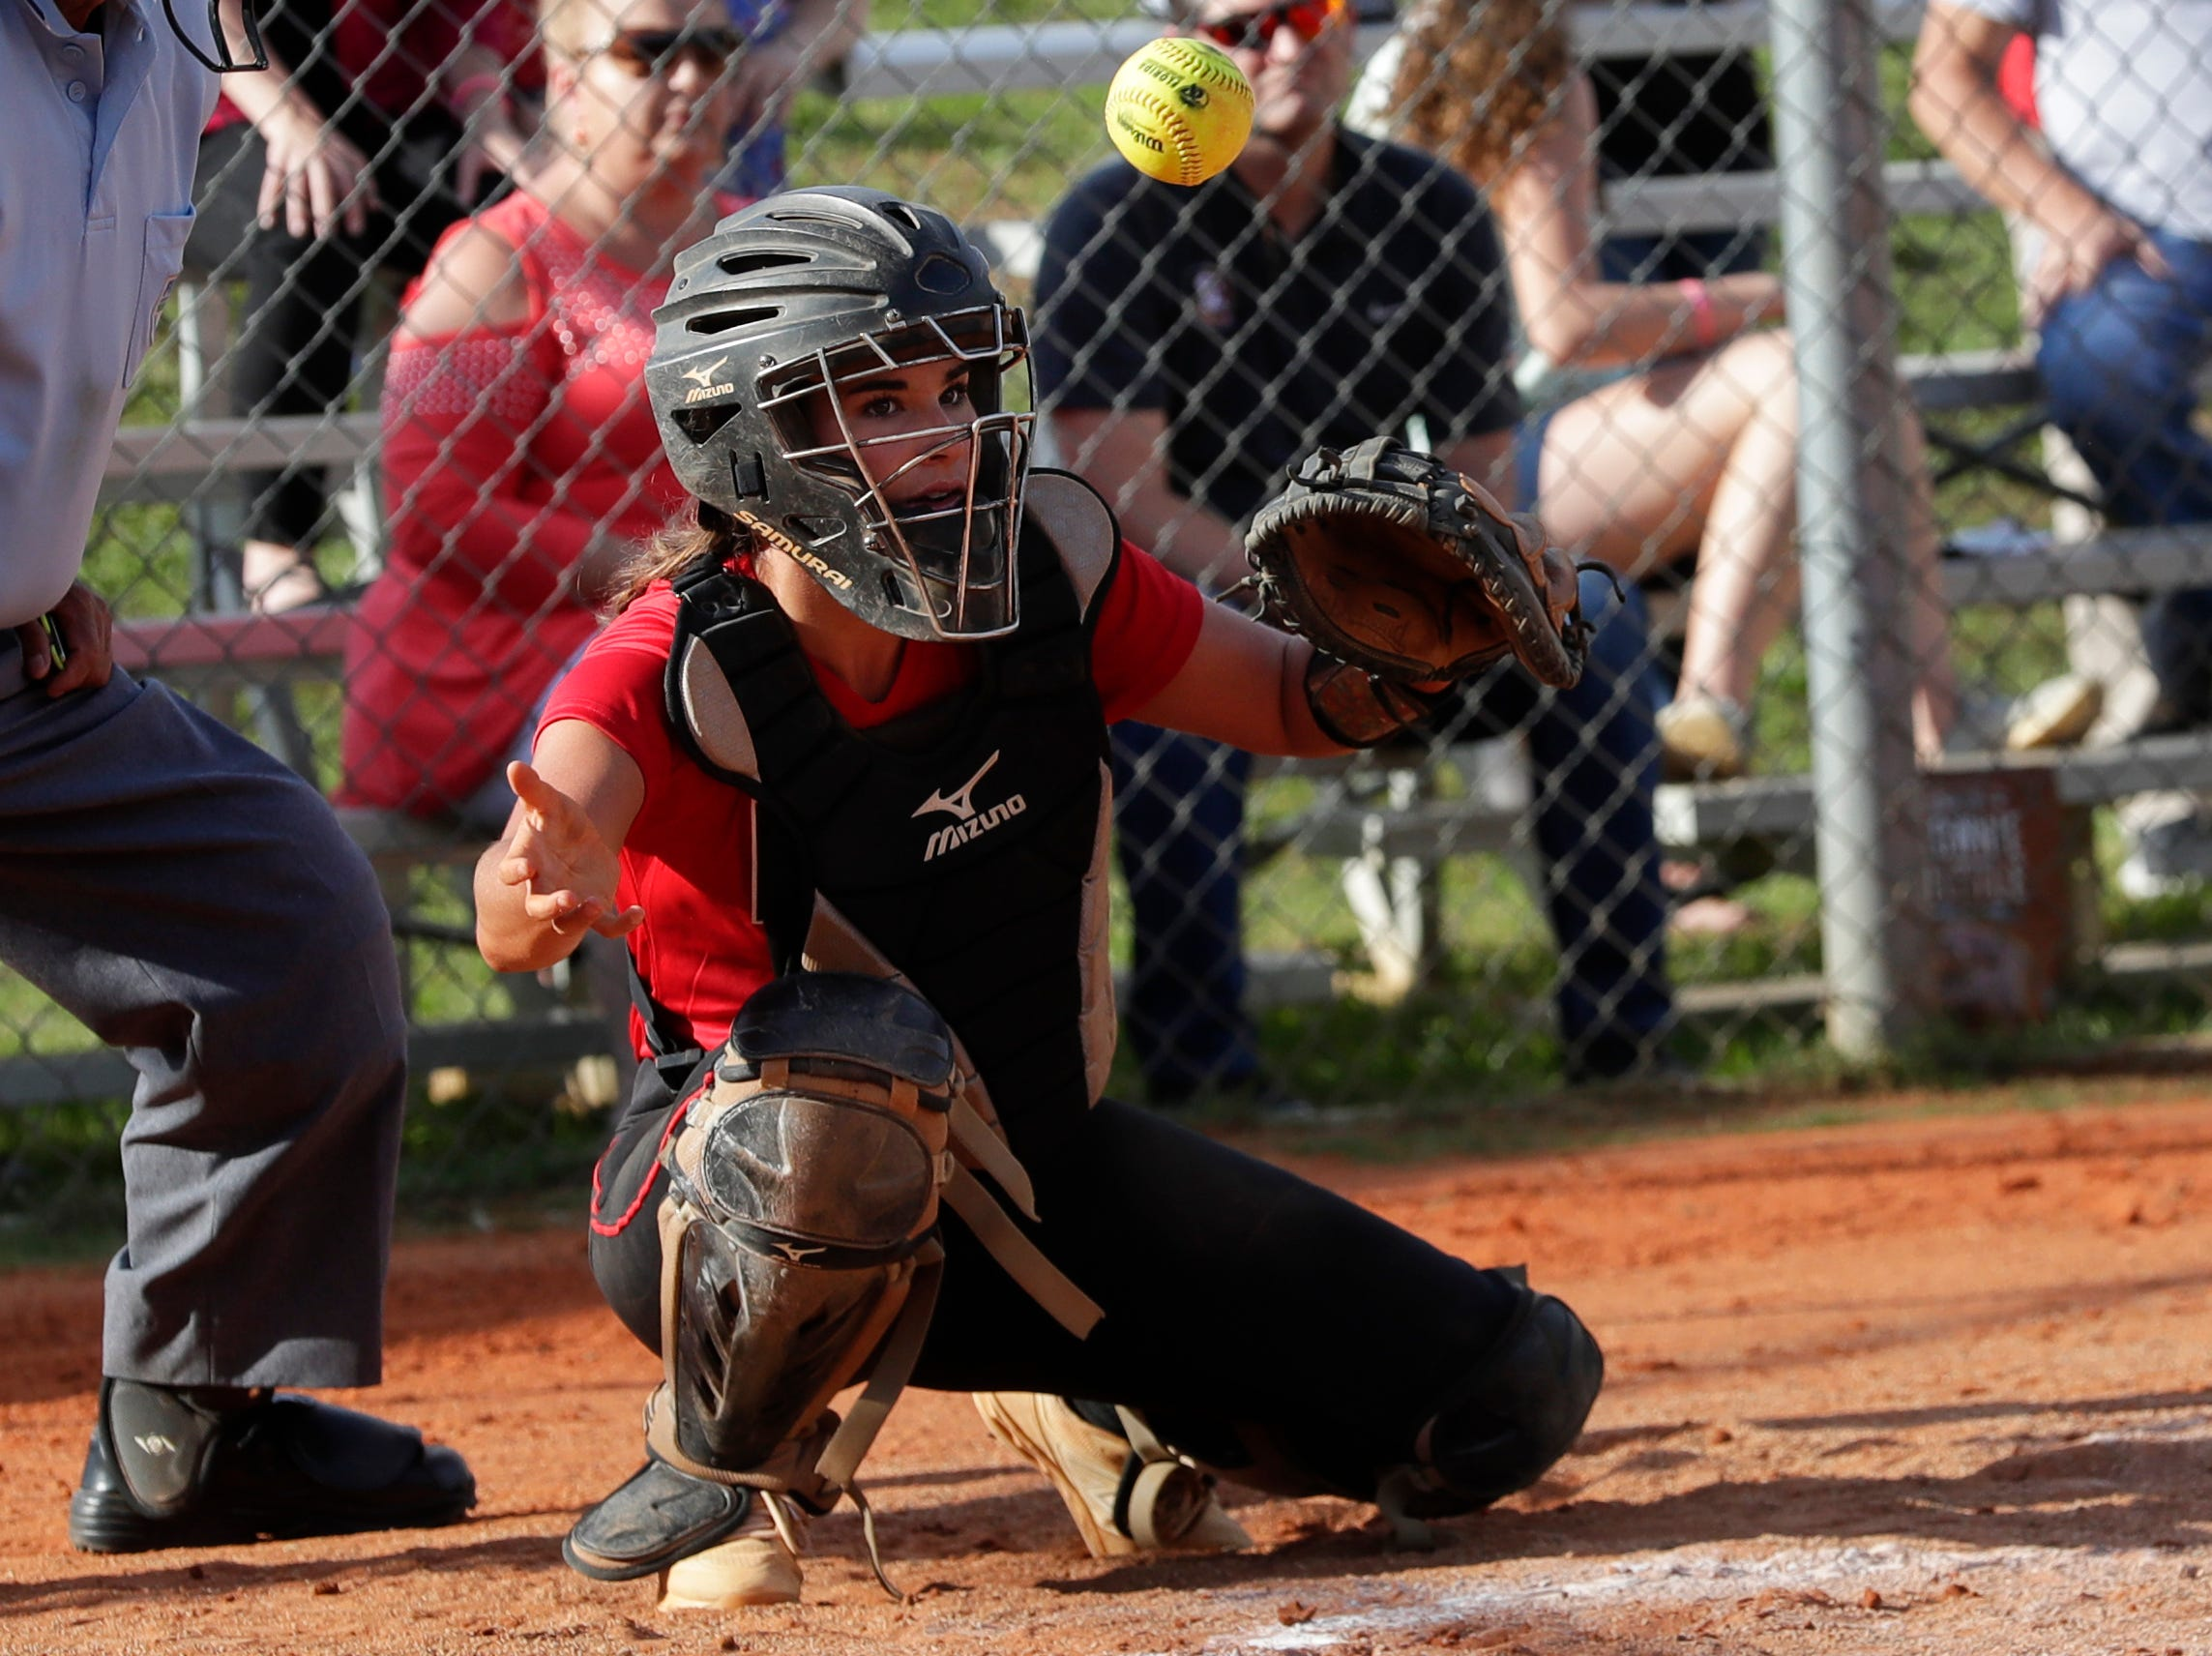 North Florida Christian's Chloe Culp (1) watches the ball during the 1-3A regional final game between NFC and University Christian at NFC Tuesday, May 14, 2019. UC defeated NFC 16 to 11 to advance to the state tournament.